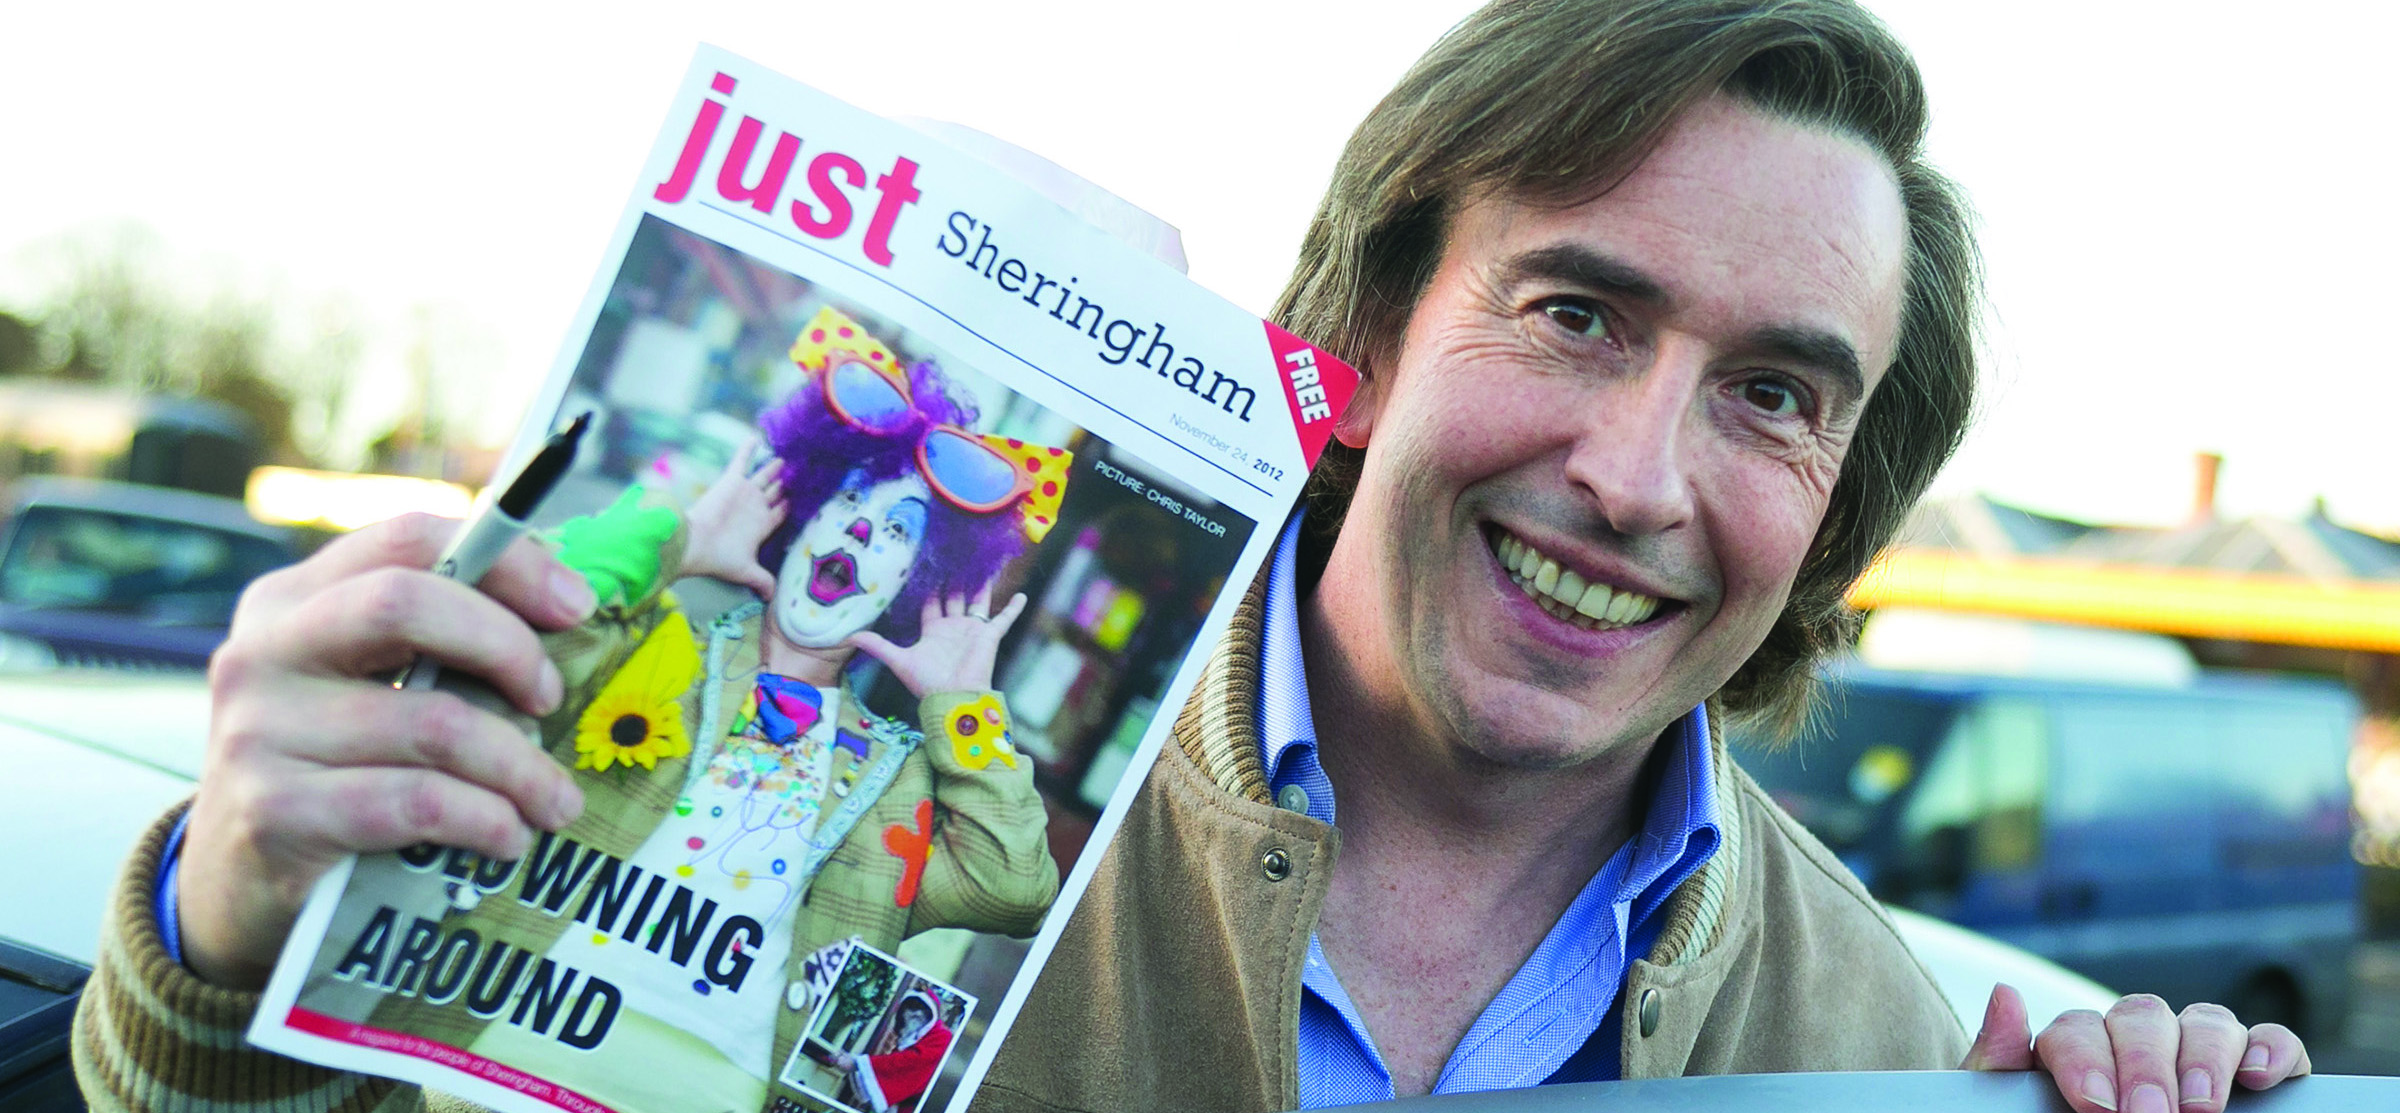 Alan Partridge Enjoying His Just Sheringham